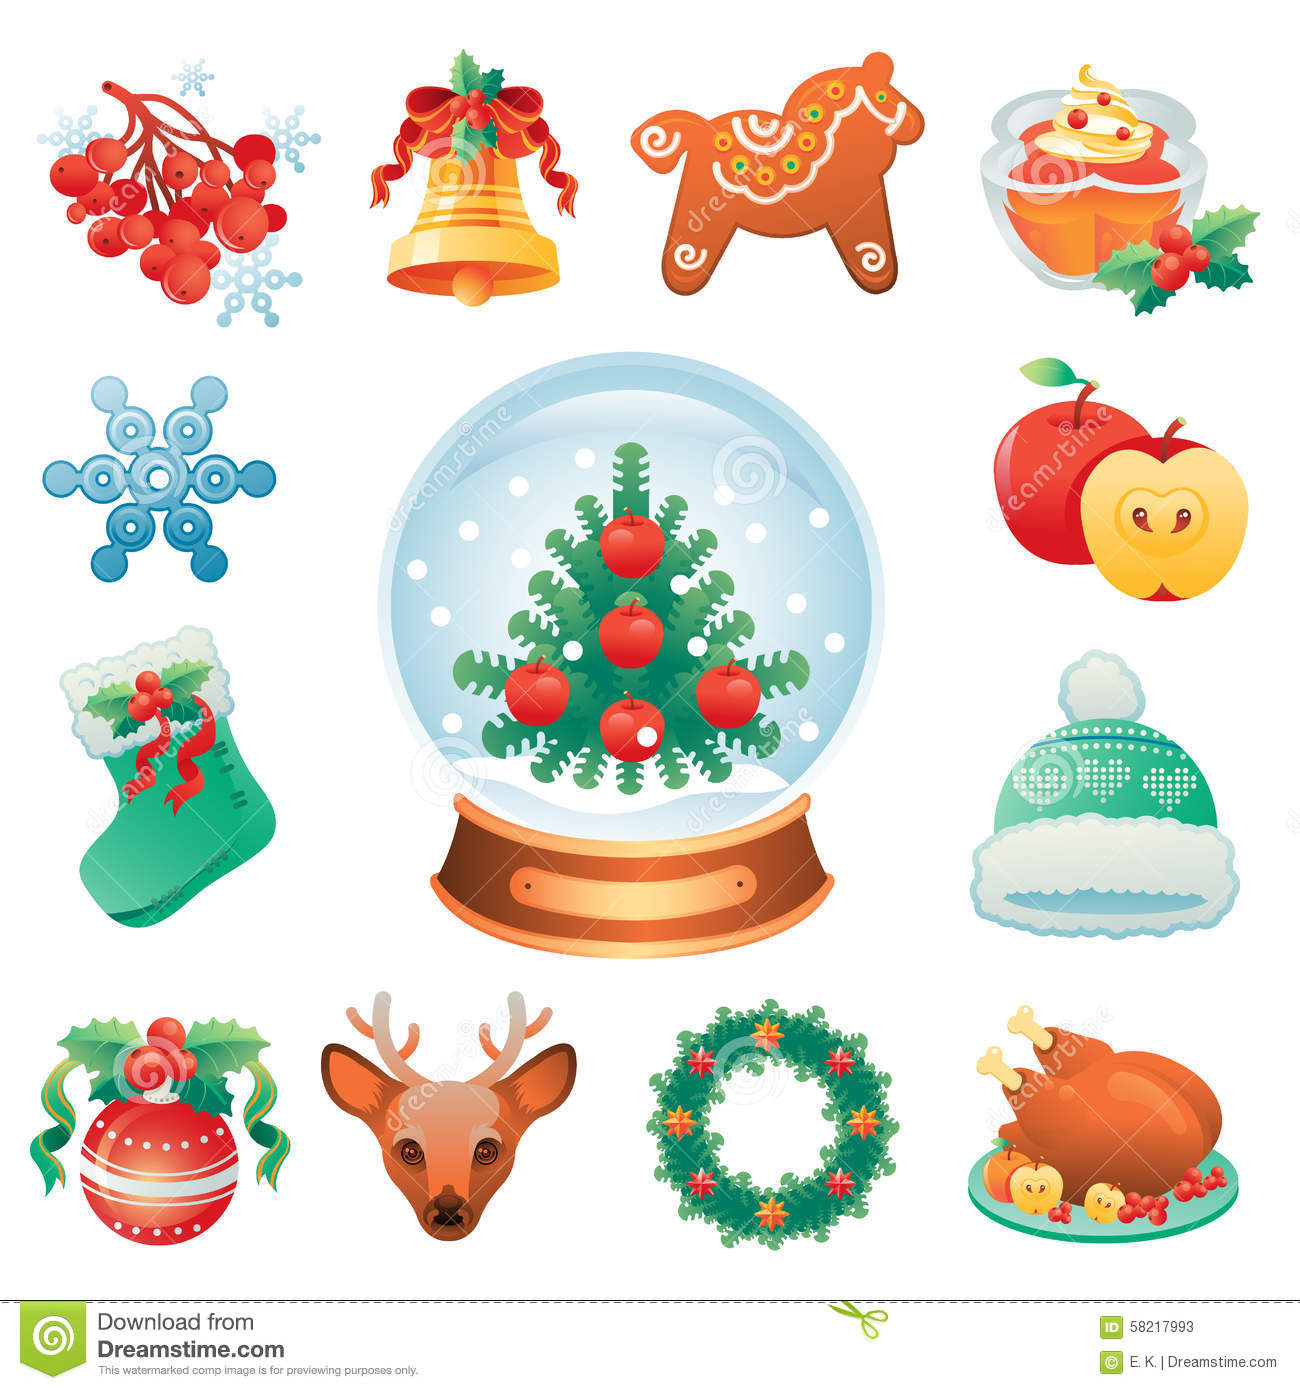 Christmas icon set containing 12 icons with winter holidays symbols